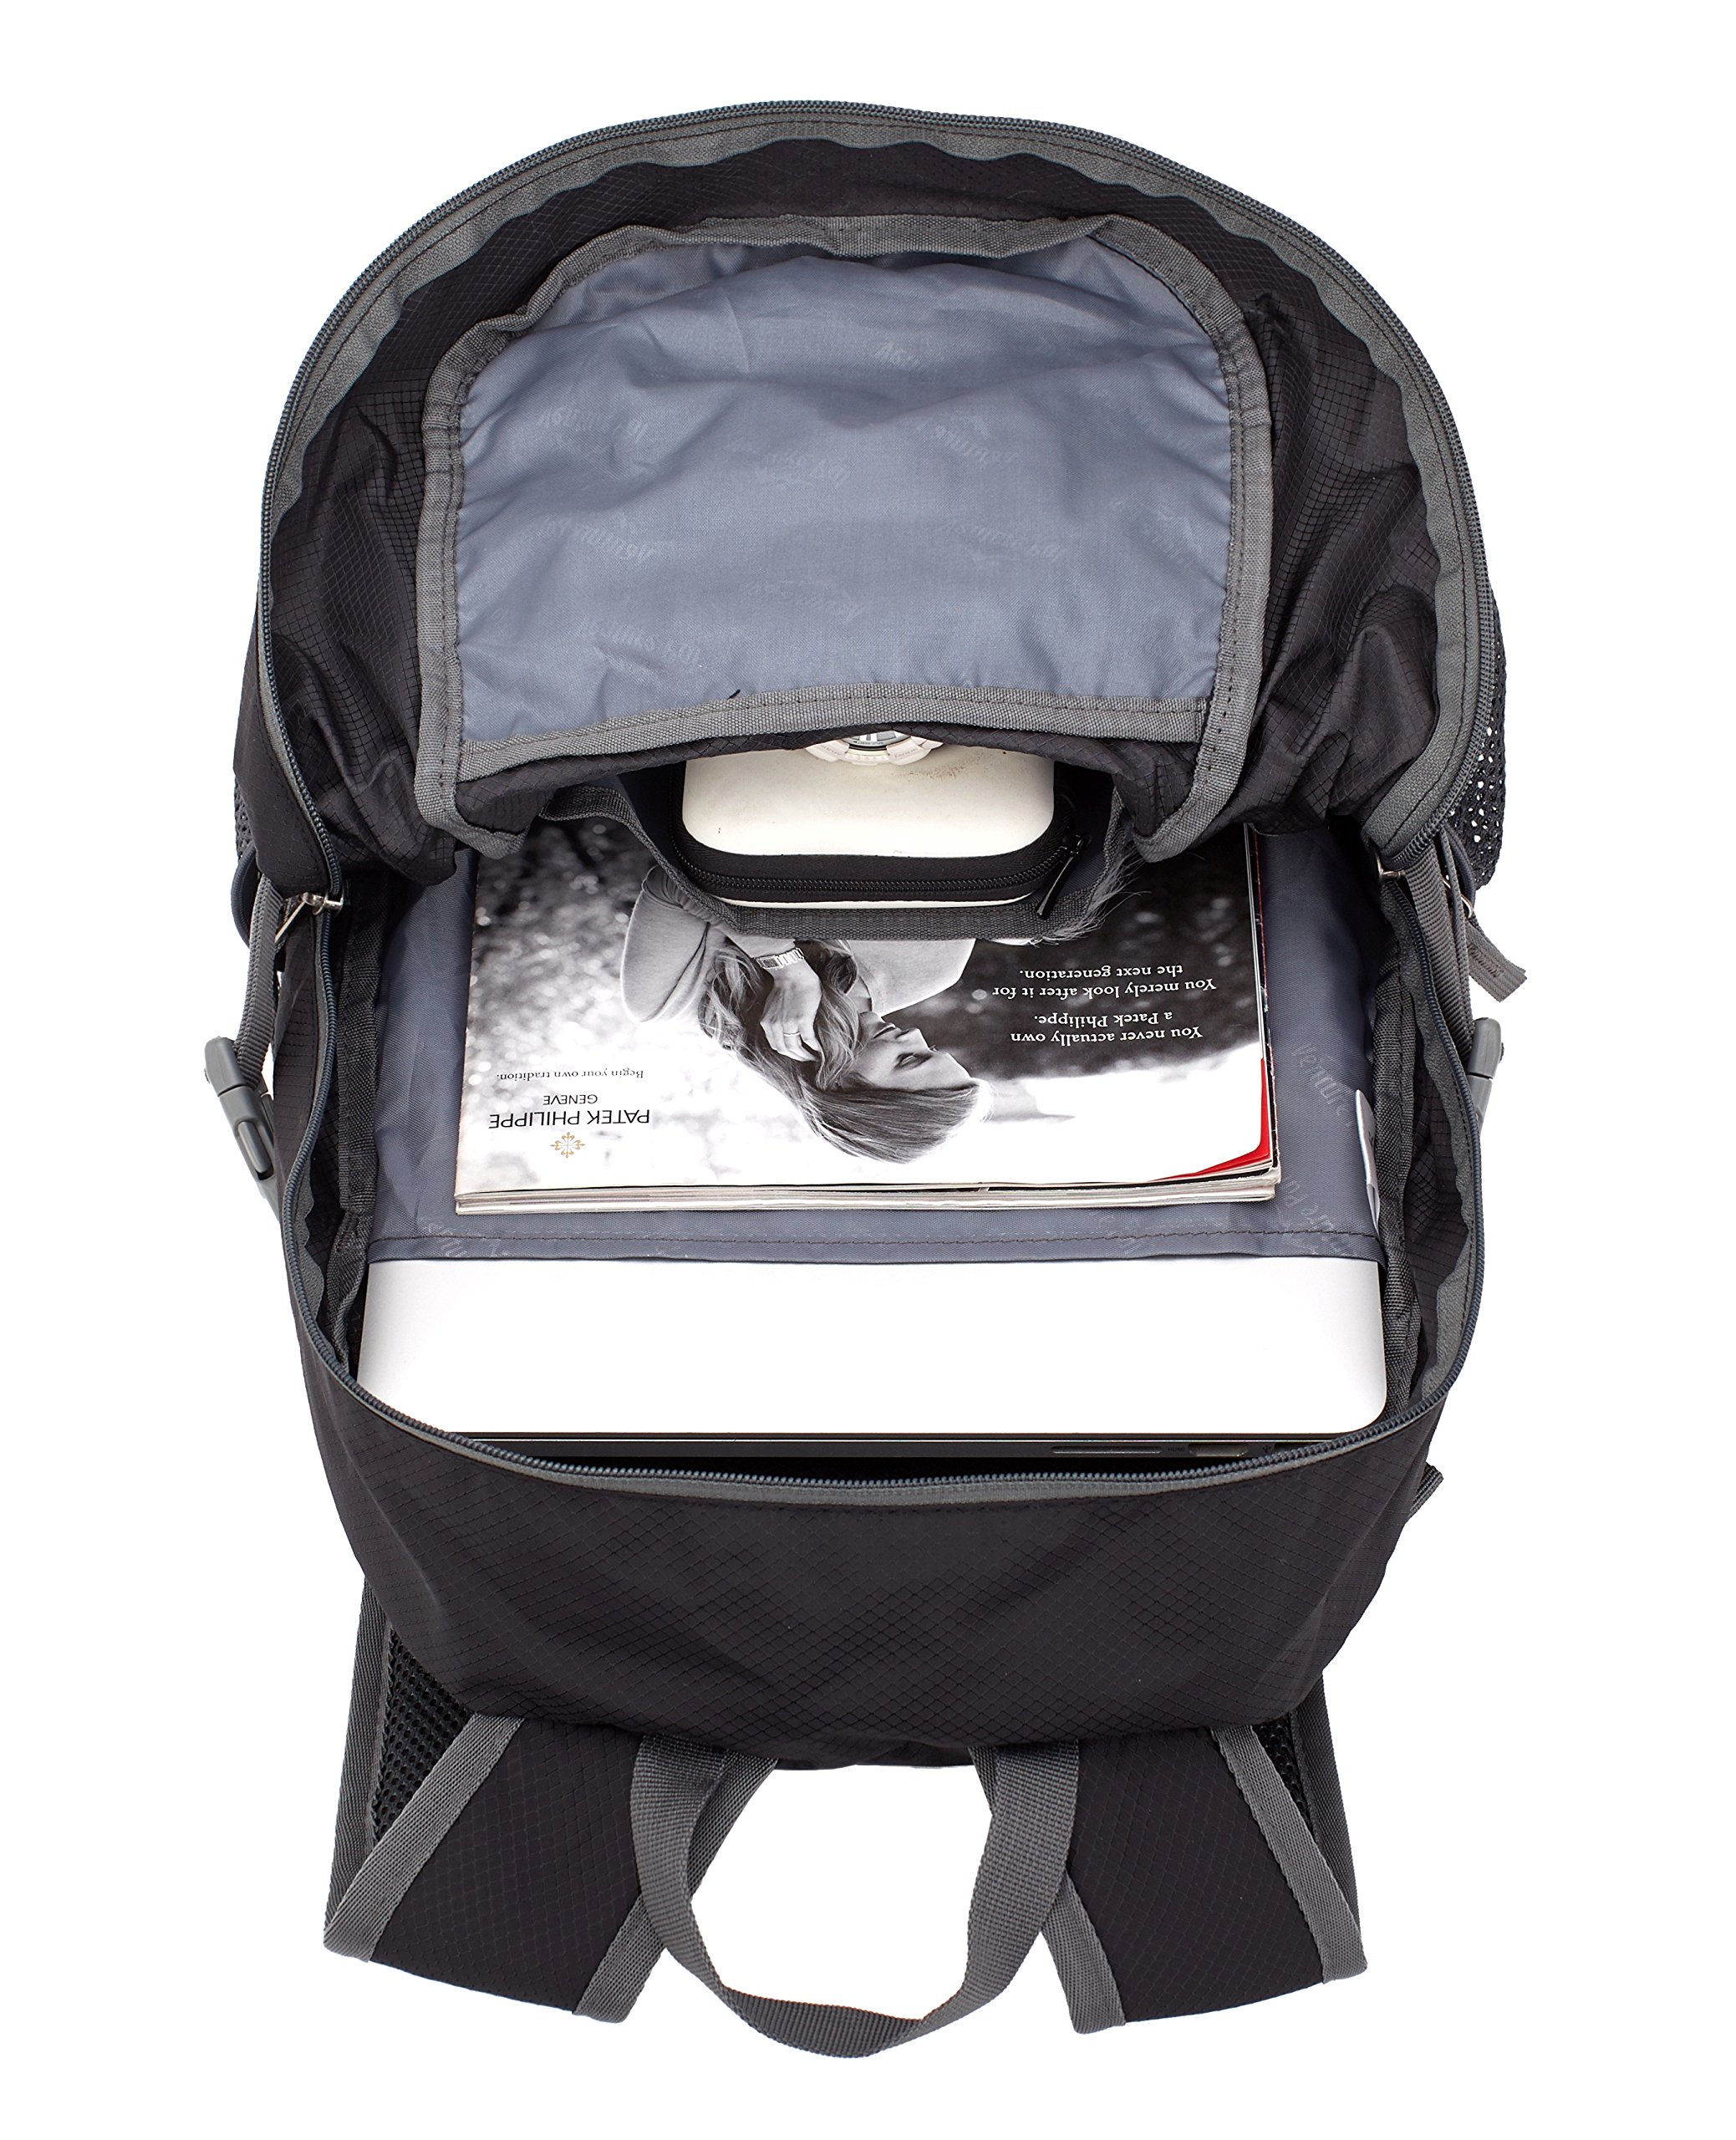 Venture Pal 35l Travel Backpack- Fenix Toulouse Handball b0efd627ffcc1